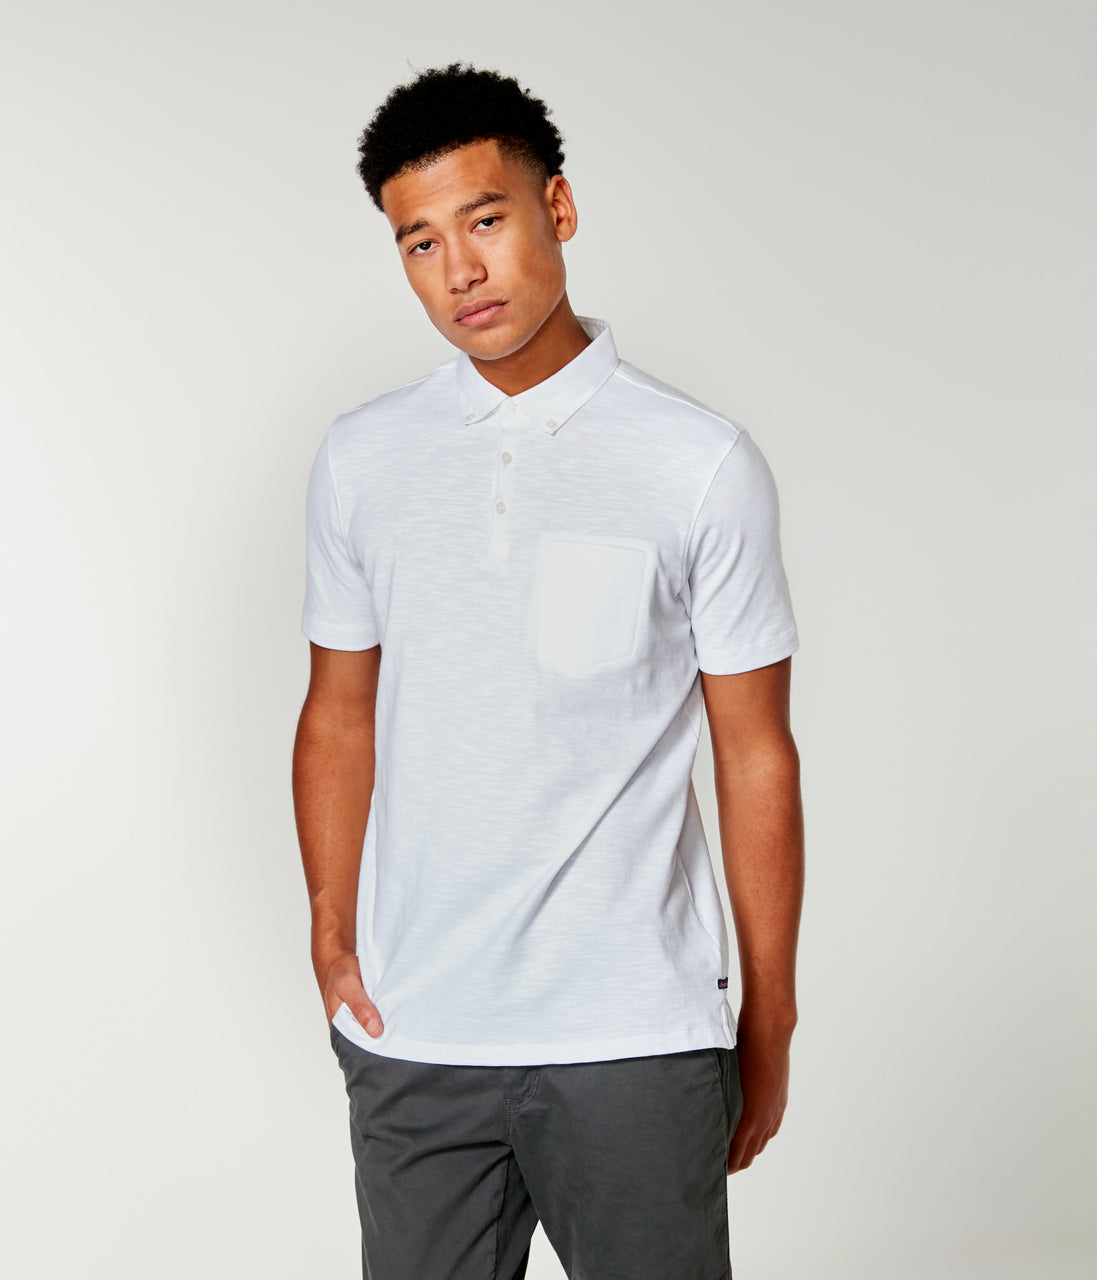 Soft Slub Jersey Polo - White - Good Man Brand - Soft Slub Jersey Polo - White